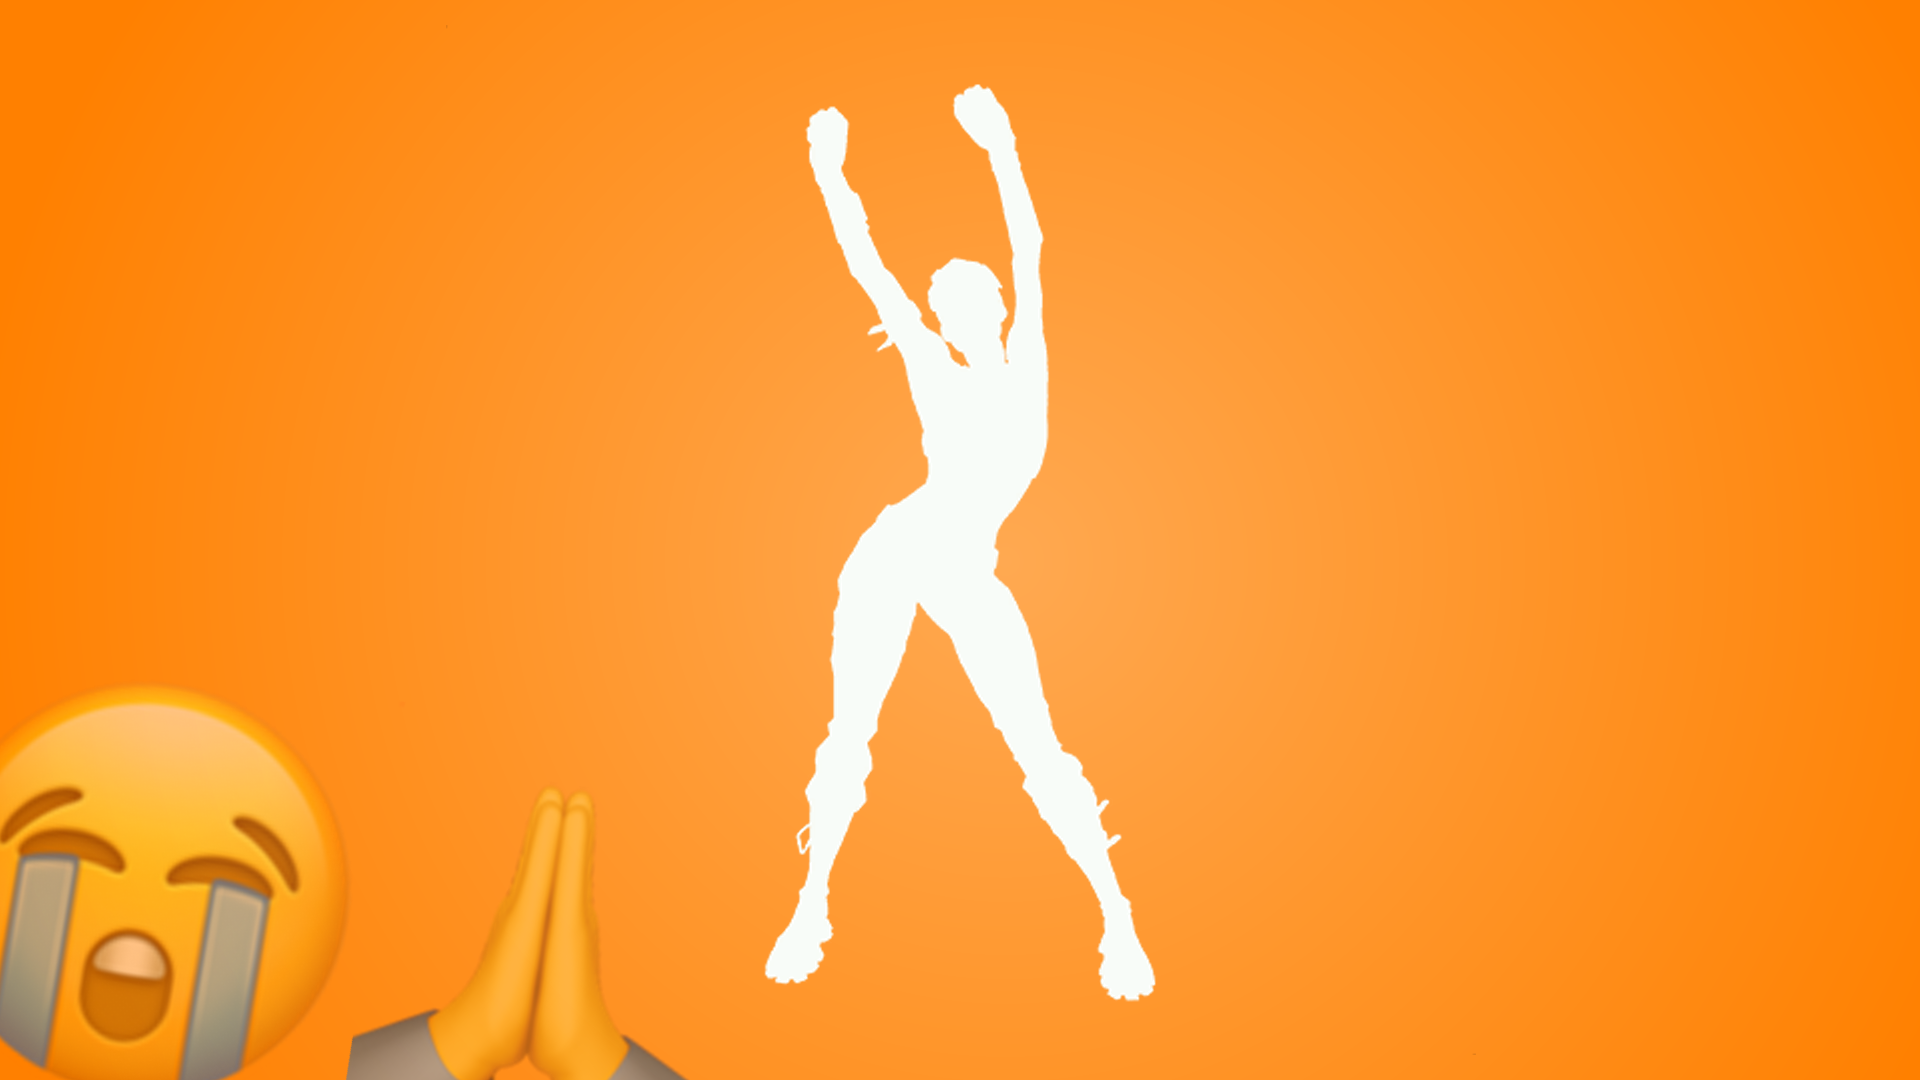 the fortnite battle royale season 8 battle pass chugs along as we enter week 9 where players are charged with dancing between three different sets of - fortnite dance between 4 hot springs location